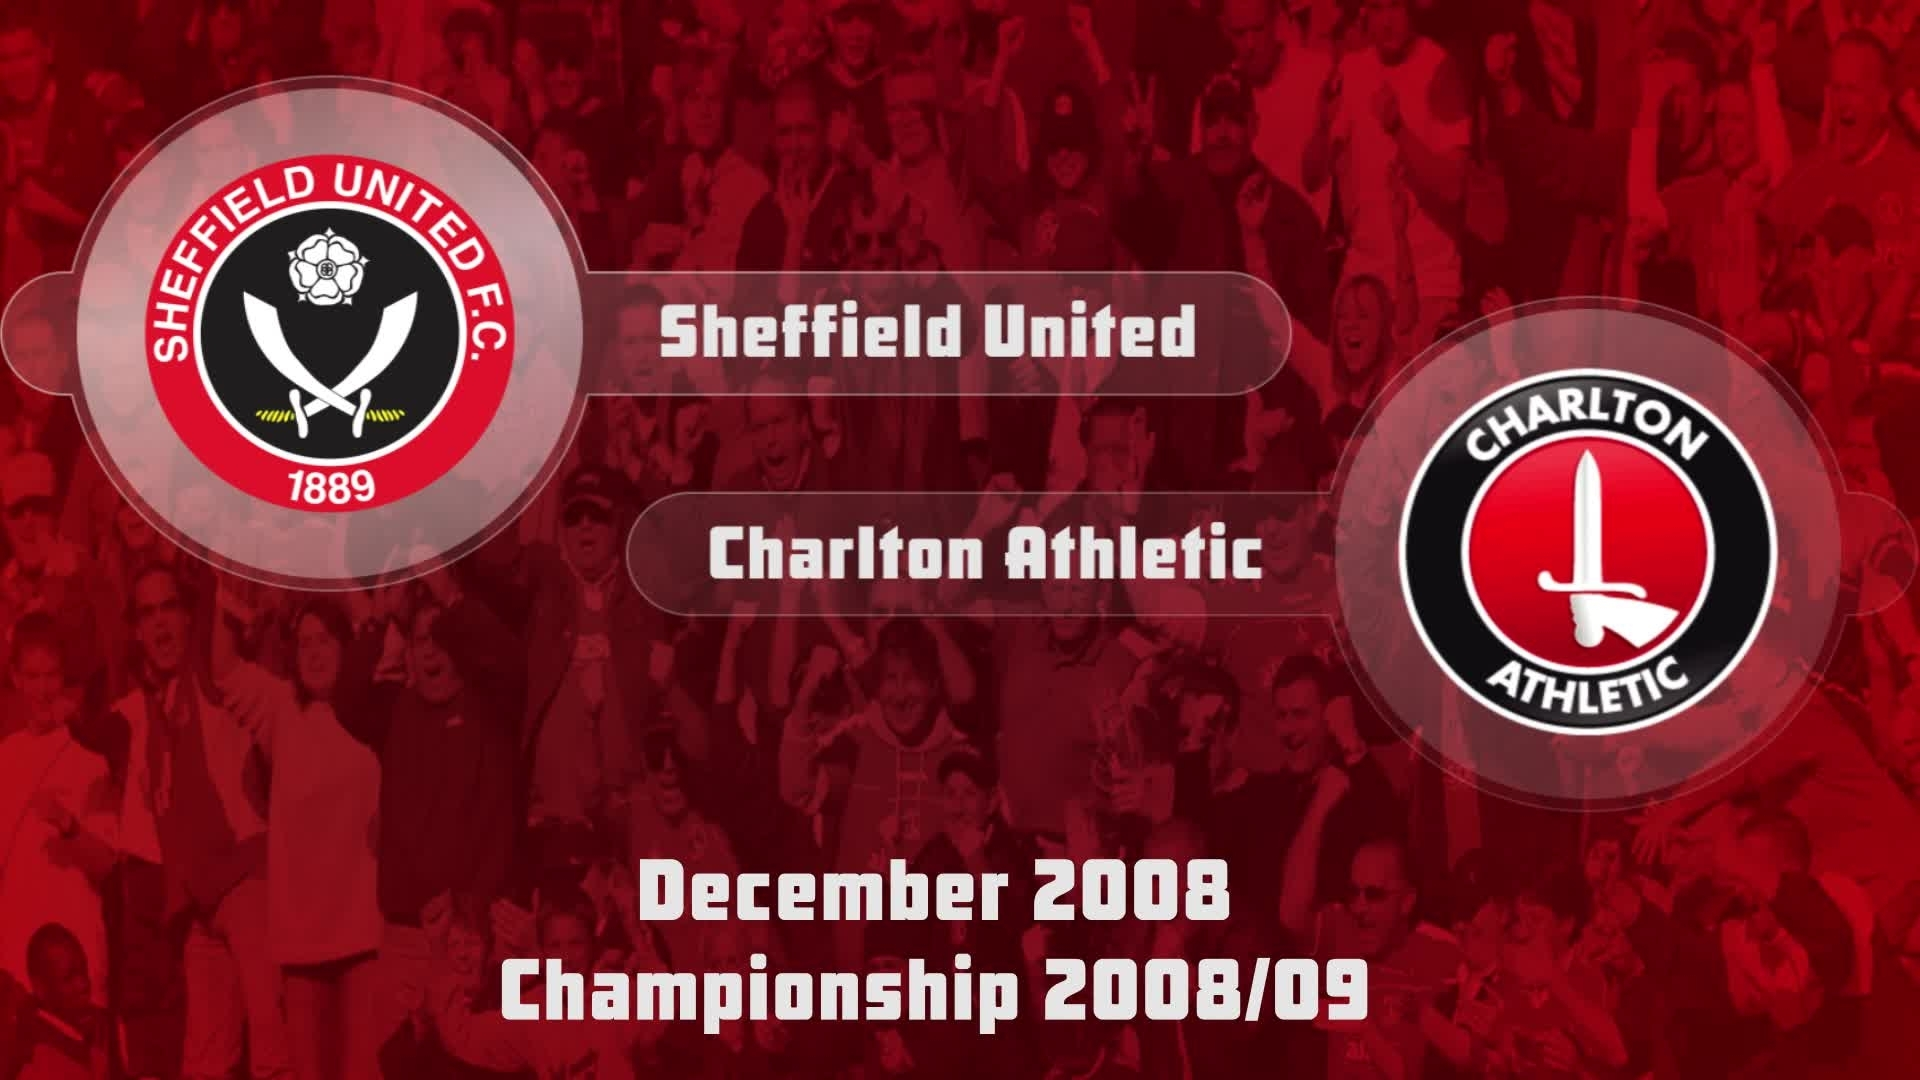 27 HIGHLIGHTS | Sheff Utd 3 Charlton 1 (Dec 2008)